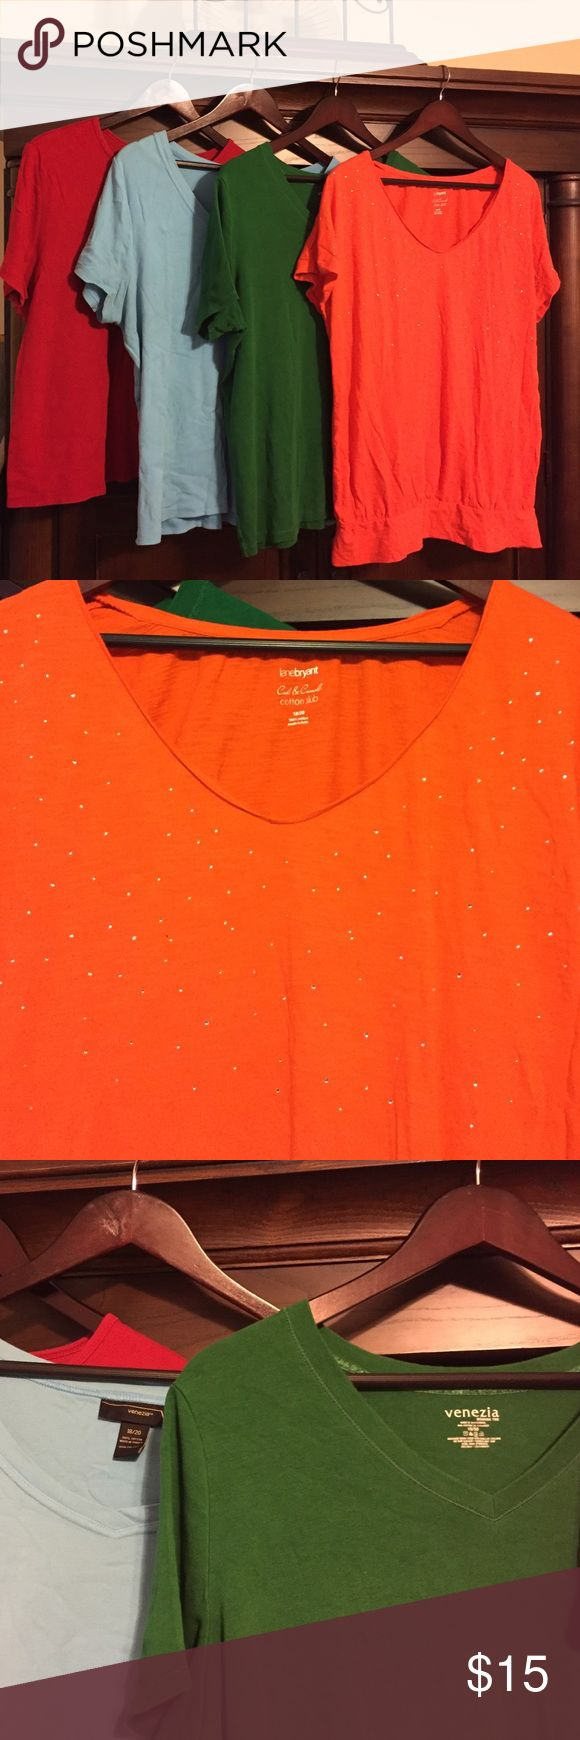 Bundle of 4 Lane Bryant tees Bundle of four Lane Bryant tees in the following colors:  red, Kelly green, turquoise, and orange. Orange tee features some rhinestone embellishment for a bit of visual interest. Lane Bryant Tops Tees - Short Sleeve